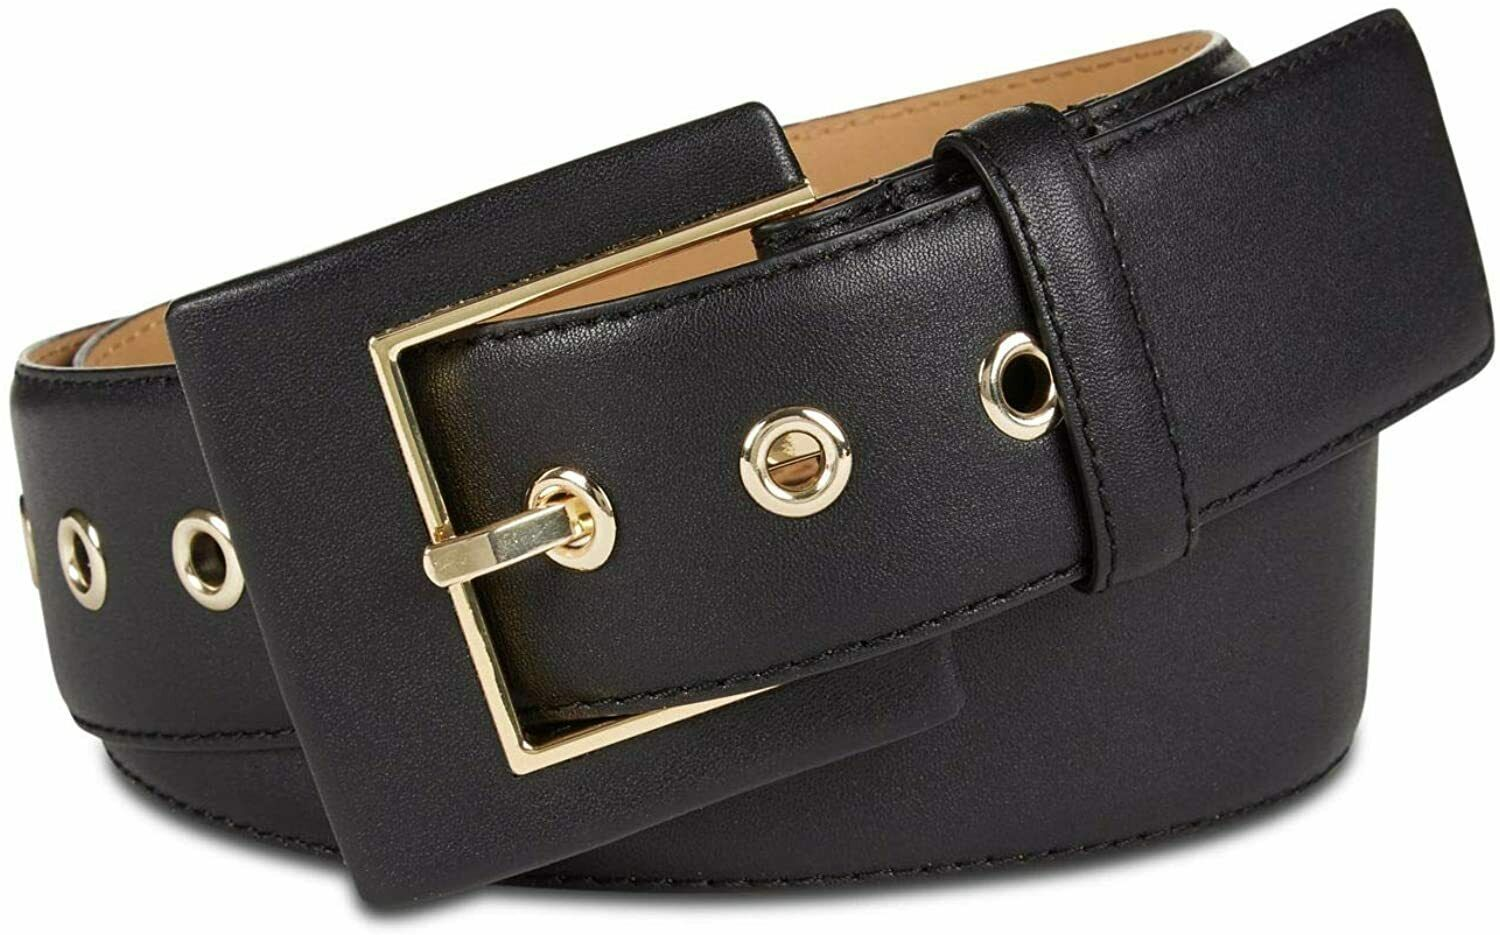 Primary image for Michael Kors Women's Hip Station Belts